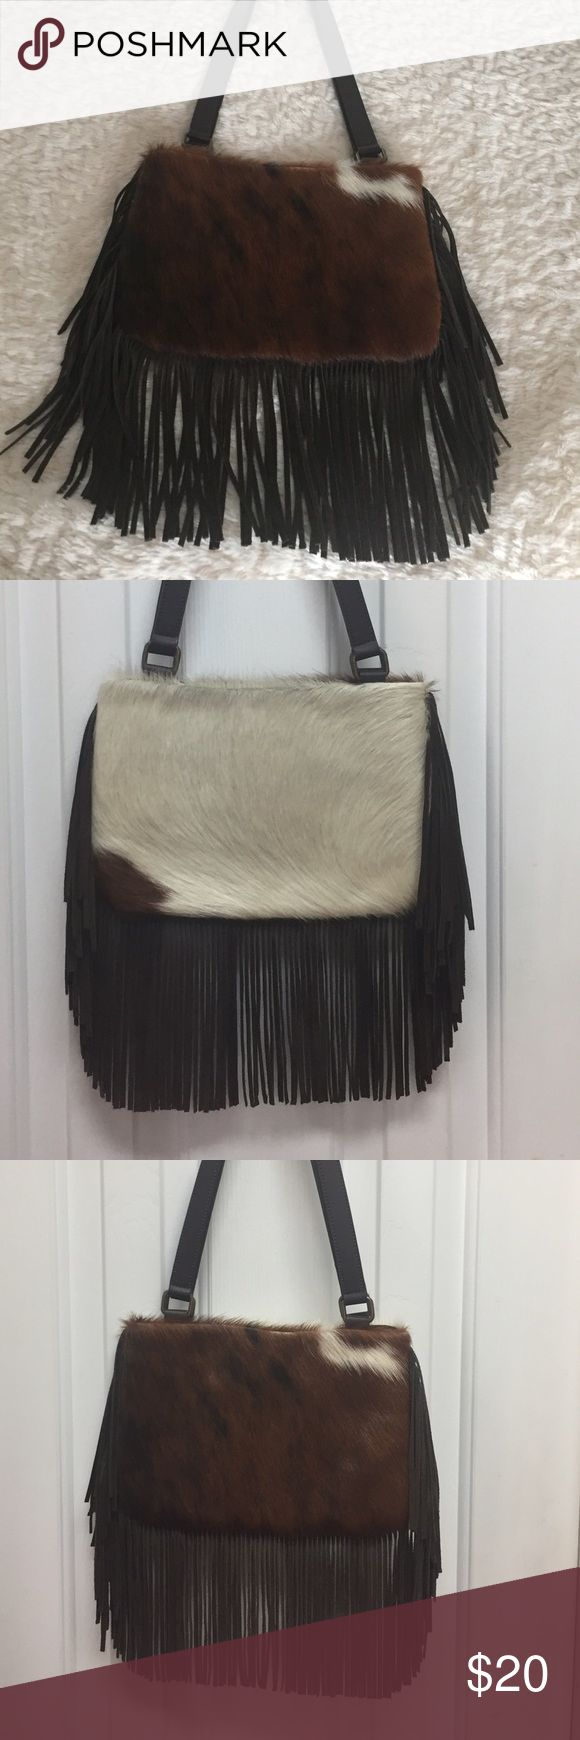 Fun & Flirty Cow Hide and Fringe Purse Bag This genuine leather cow hide fringed purse is mainly white on one side and brown and black on the other. Flirty fringe. Measures 10.5 x 7 . Zipper closure. Inside zippered pocket Nd accessory pocket.Check out other items in my closet to bundle and save. Reasonable offers accepted. Express Bags